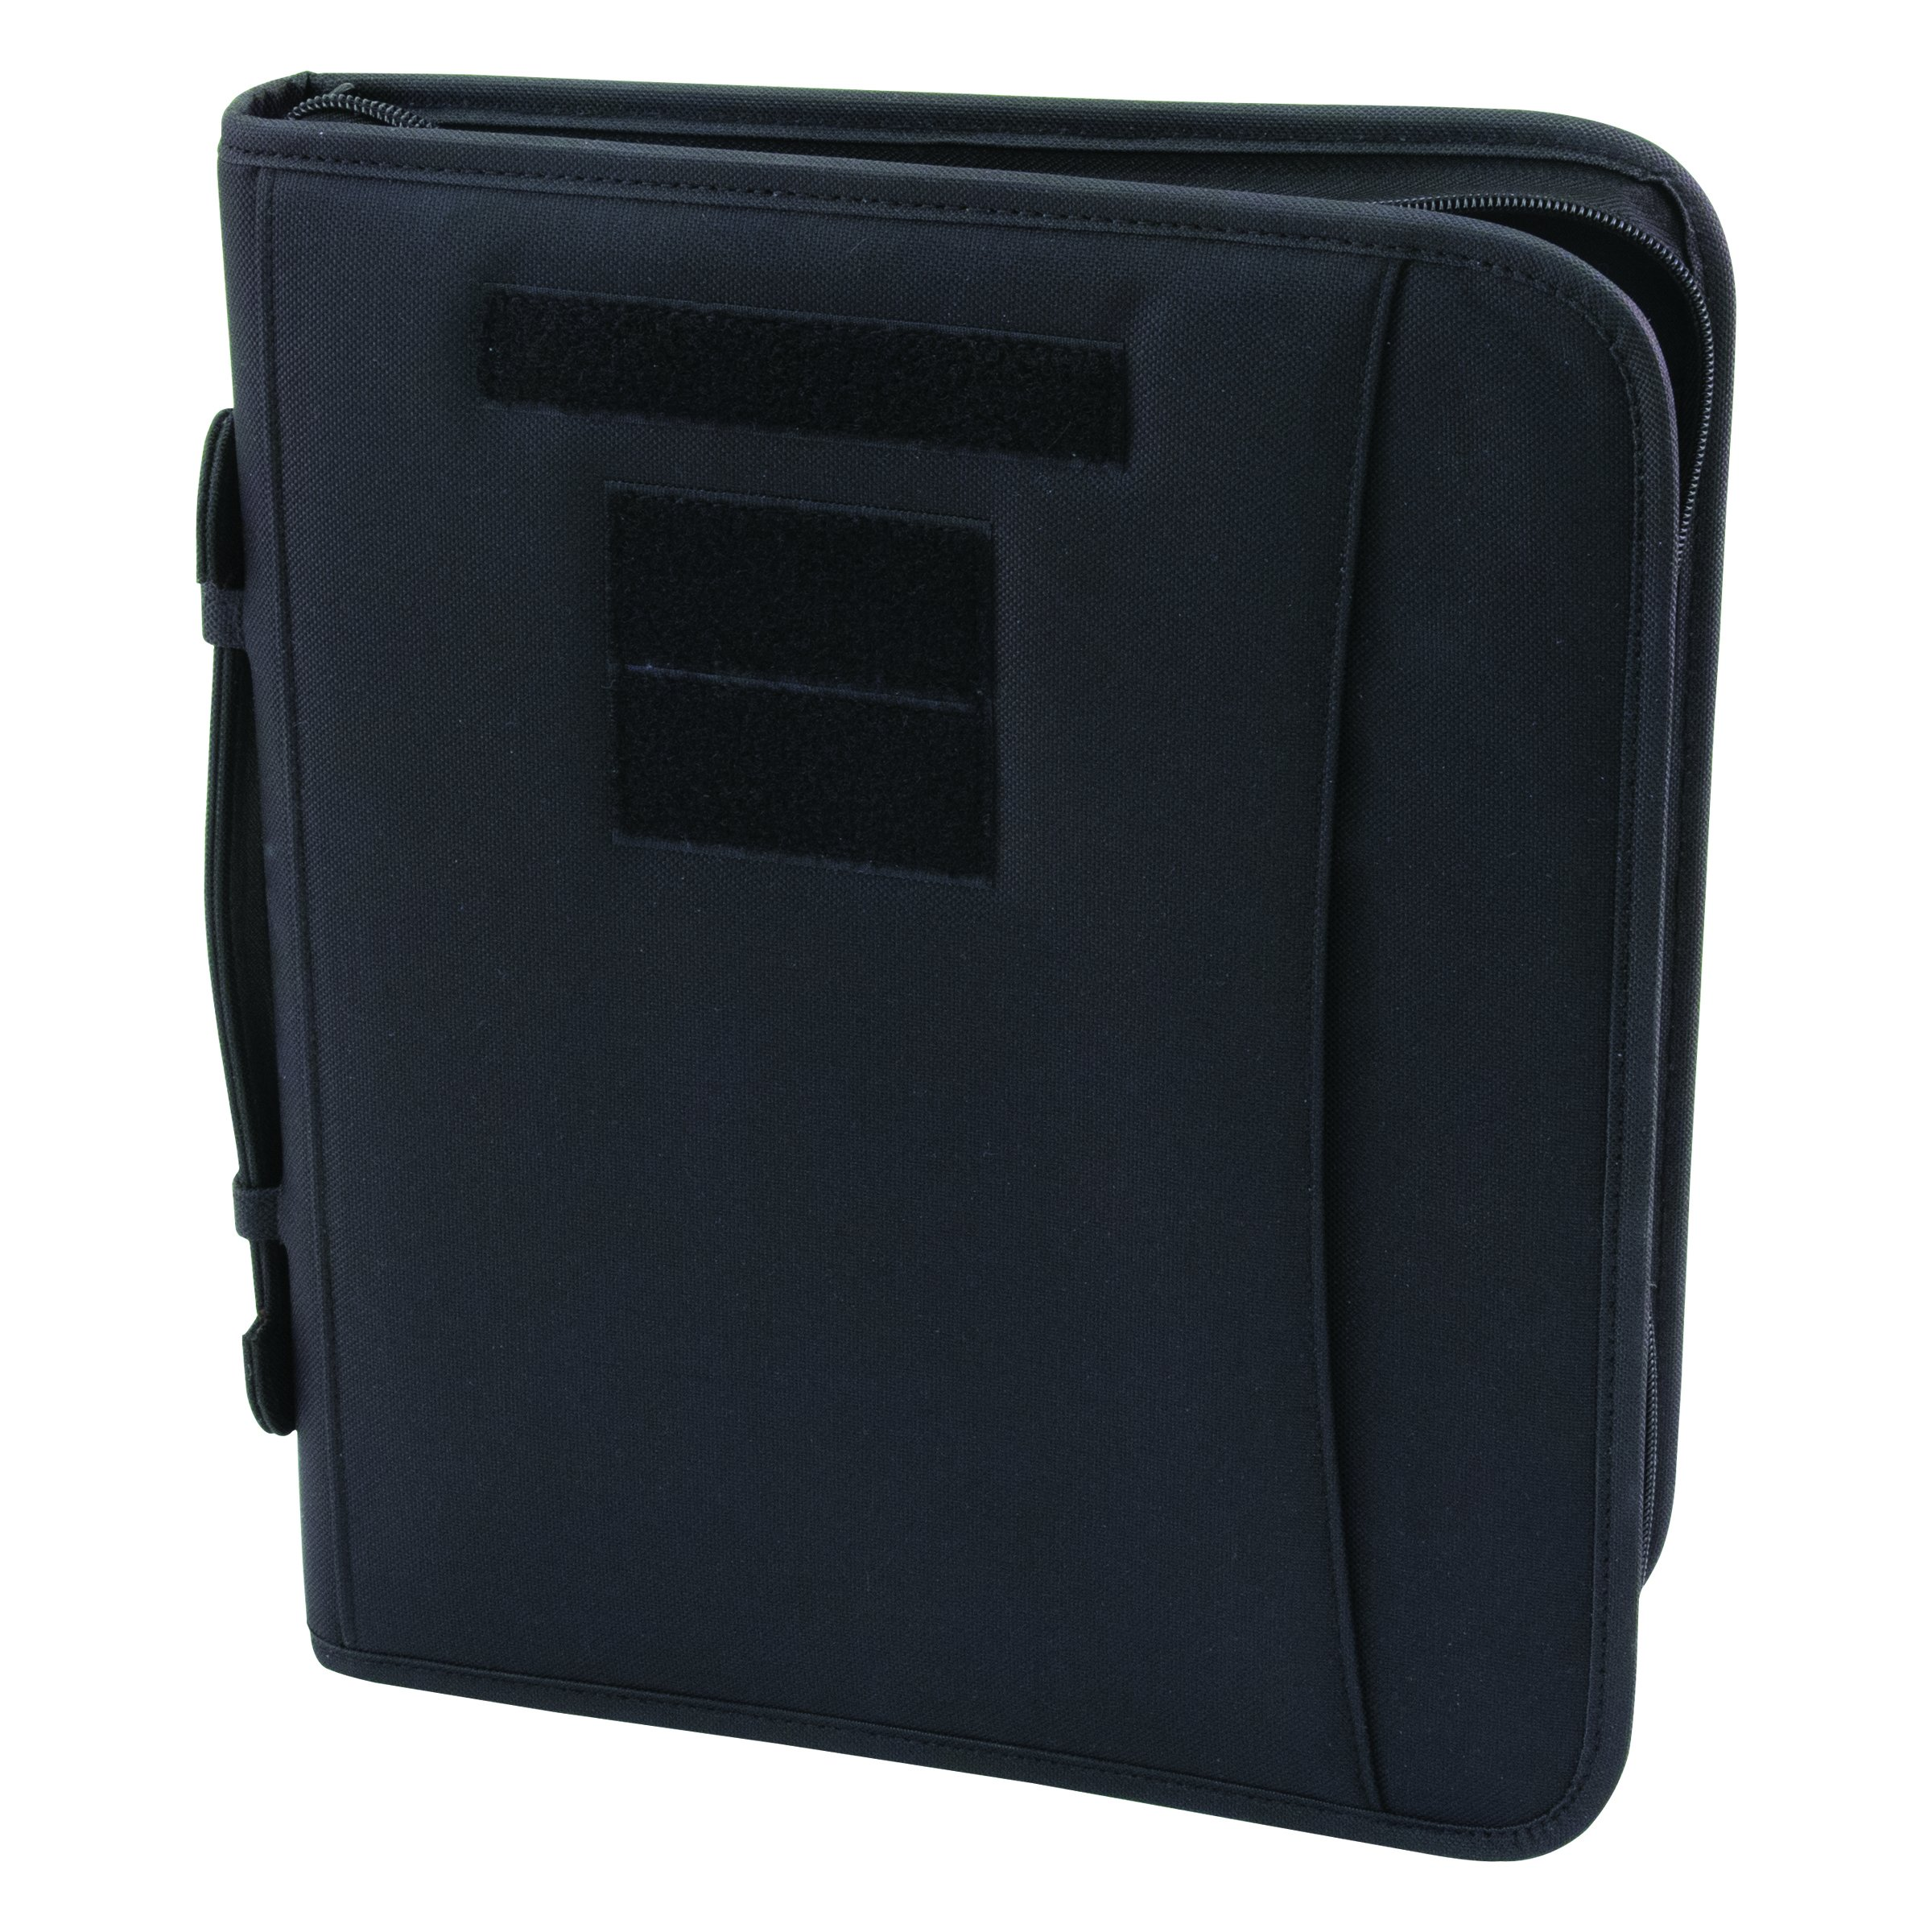 Field Ready Black Military Zippered 3 Ring Binder And Padfolio by Military Luggage Company